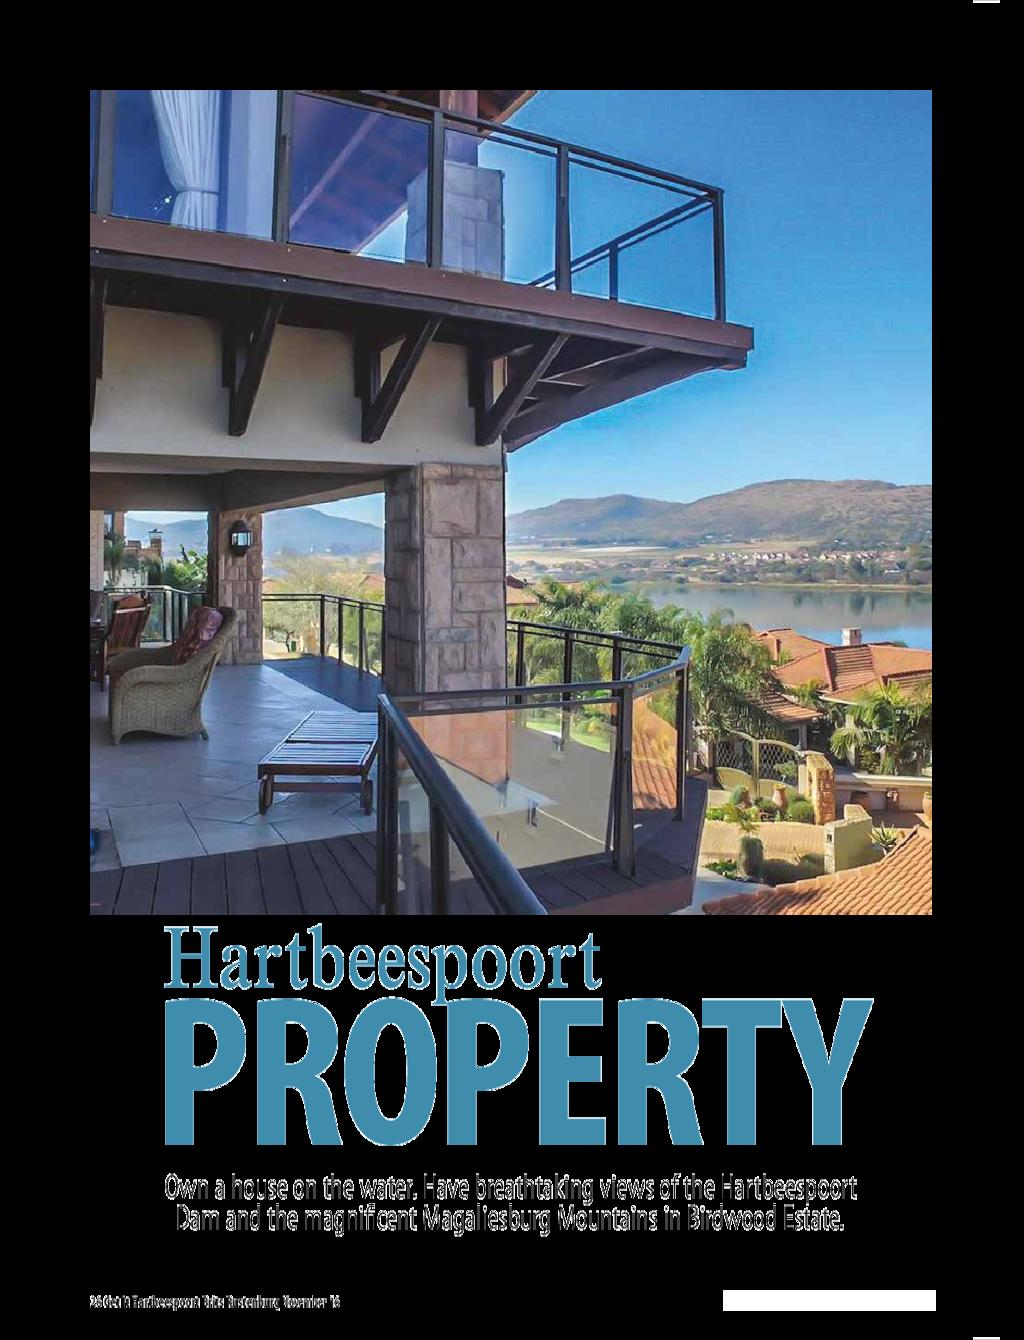 get-it-hartbeespoort-december-2016-epapers-page-36